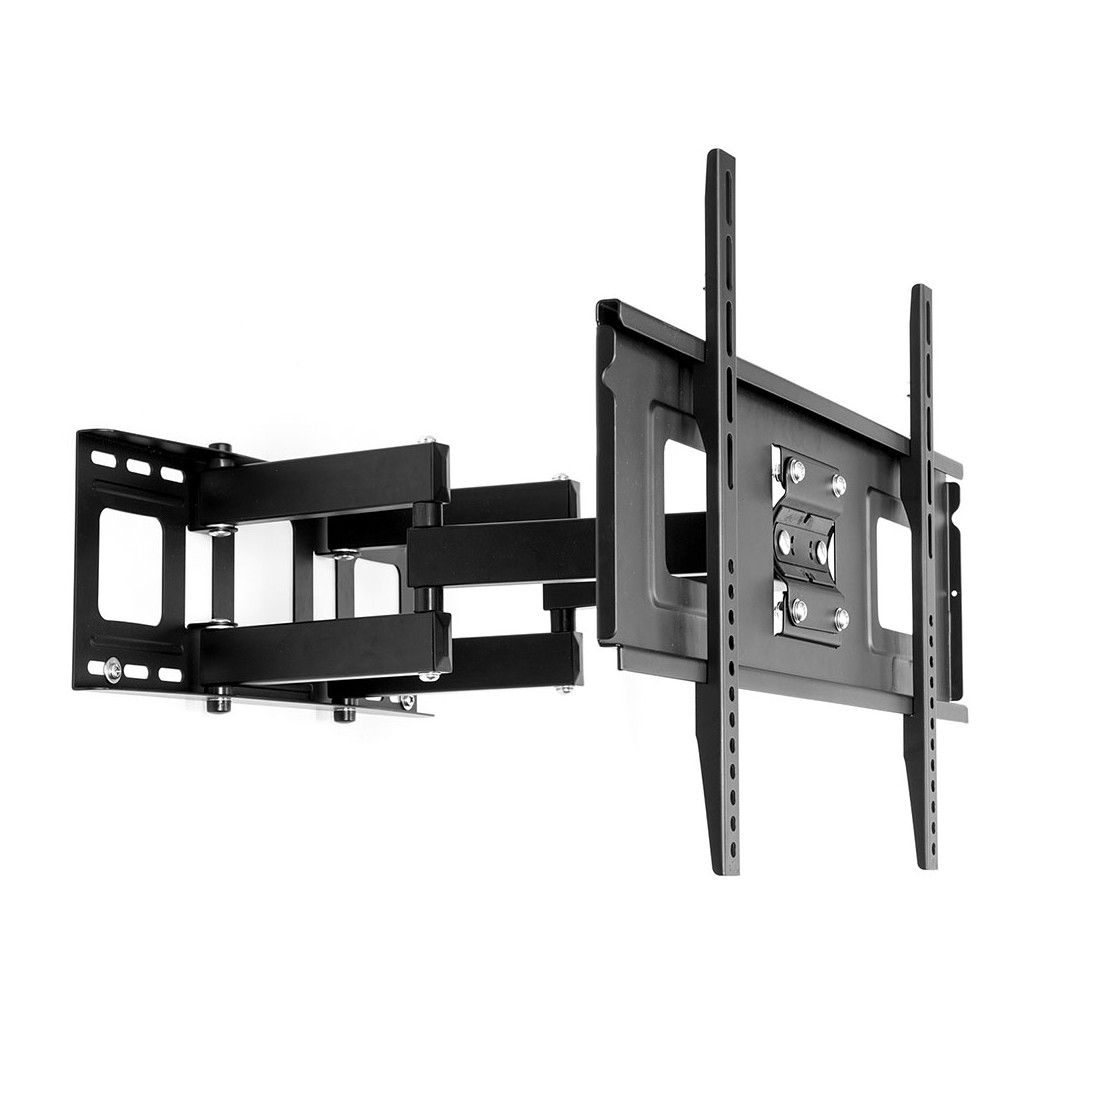 Fleximounts Cr1 Curved Led Lcd Tv Wall Mount Full Motion Bracket For 32 65 Up To 132lbs